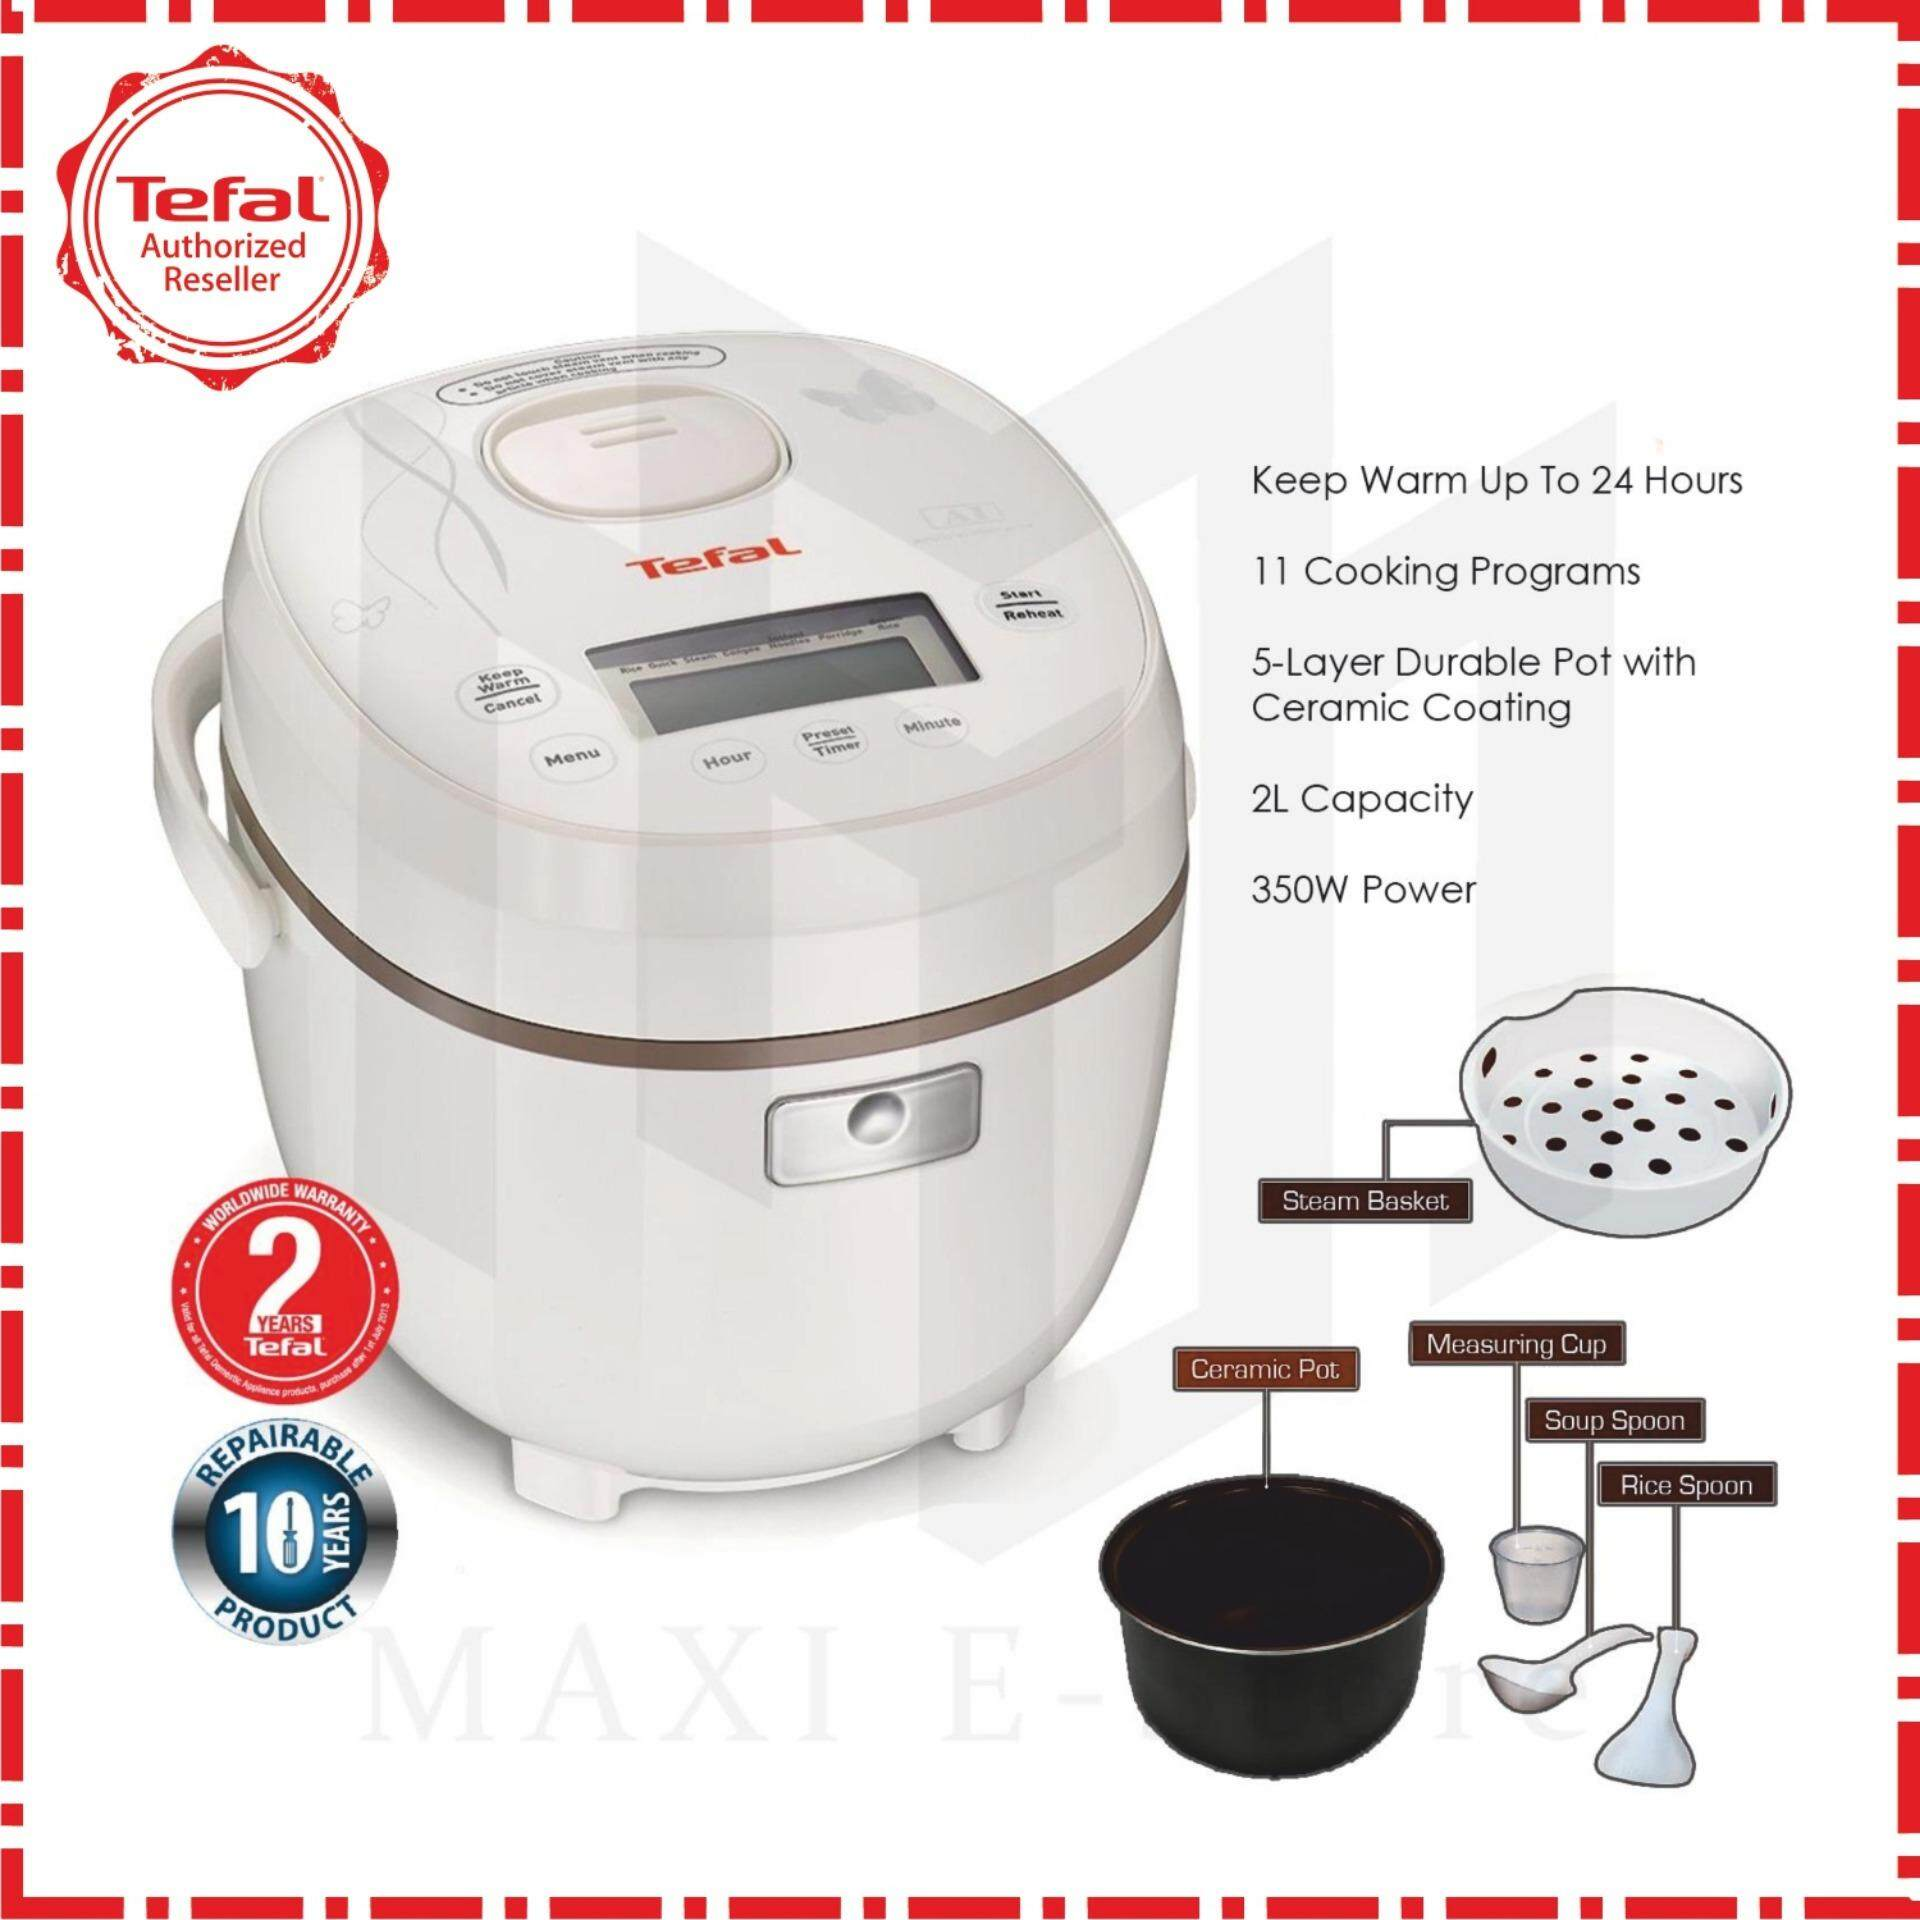 Tefal Rk5001 Mini Fuzzy Logic Rice Cooker 0.5l By Maxi E-Store.